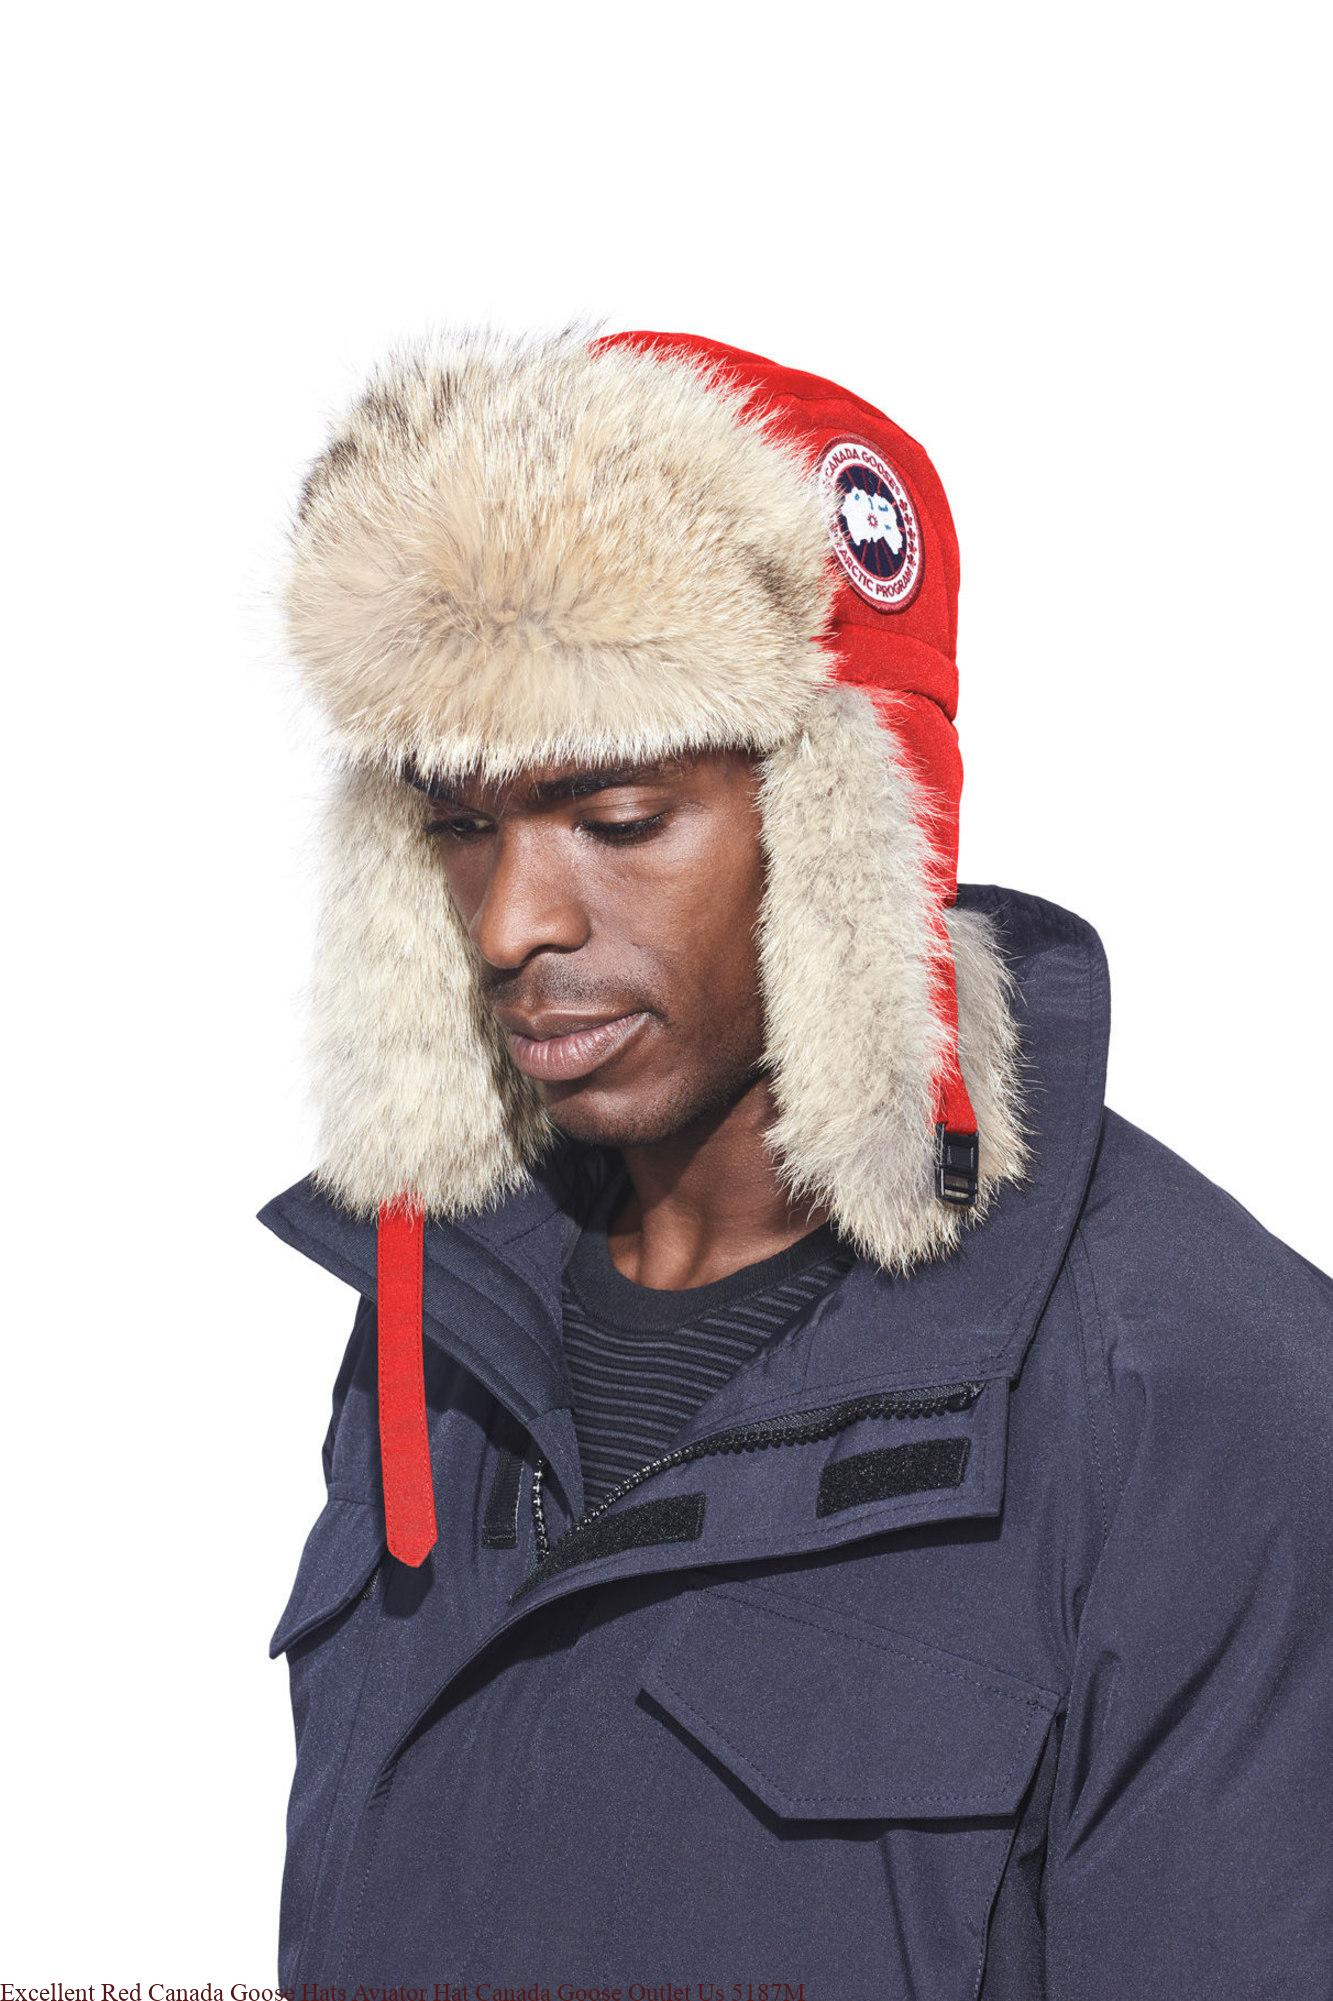 28a9318e365fc Excellent Red Canada Goose Hats Aviator Hat Canada Goose Outlet Us 5187M –  UK Cheap Canada Goose Outlet Jackets On Sale